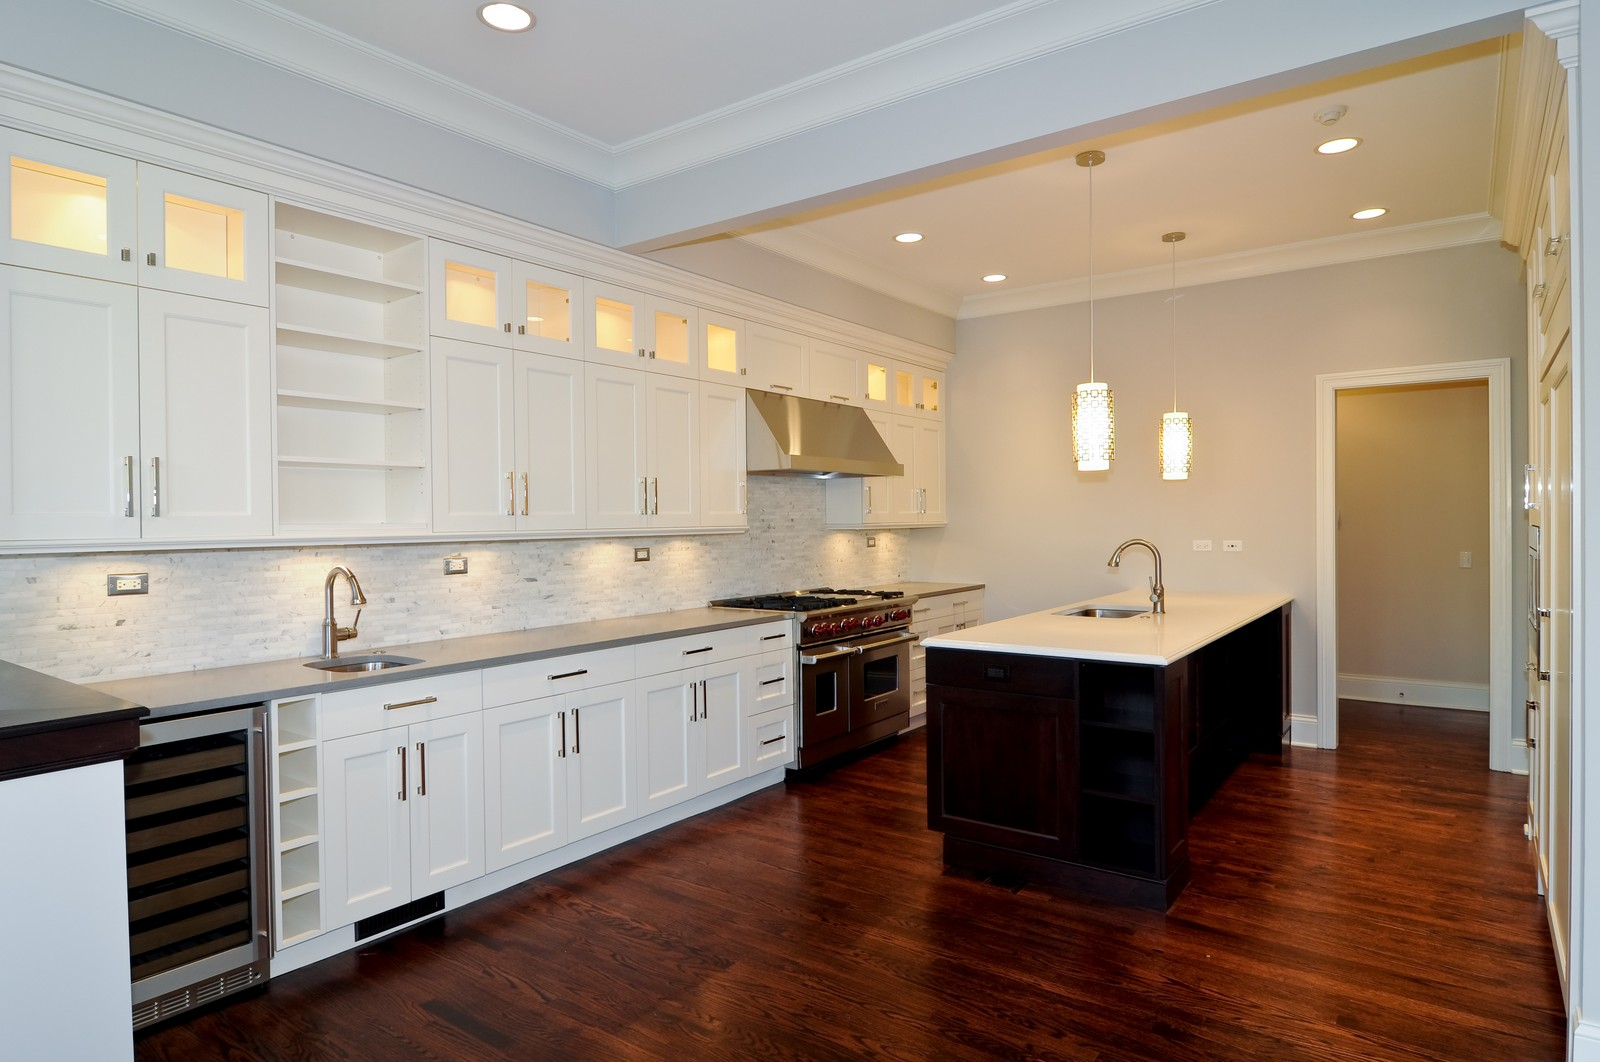 Real Estate Photography - 3845 N Paulina St, Chicago, IL, 60613 - Kitchen